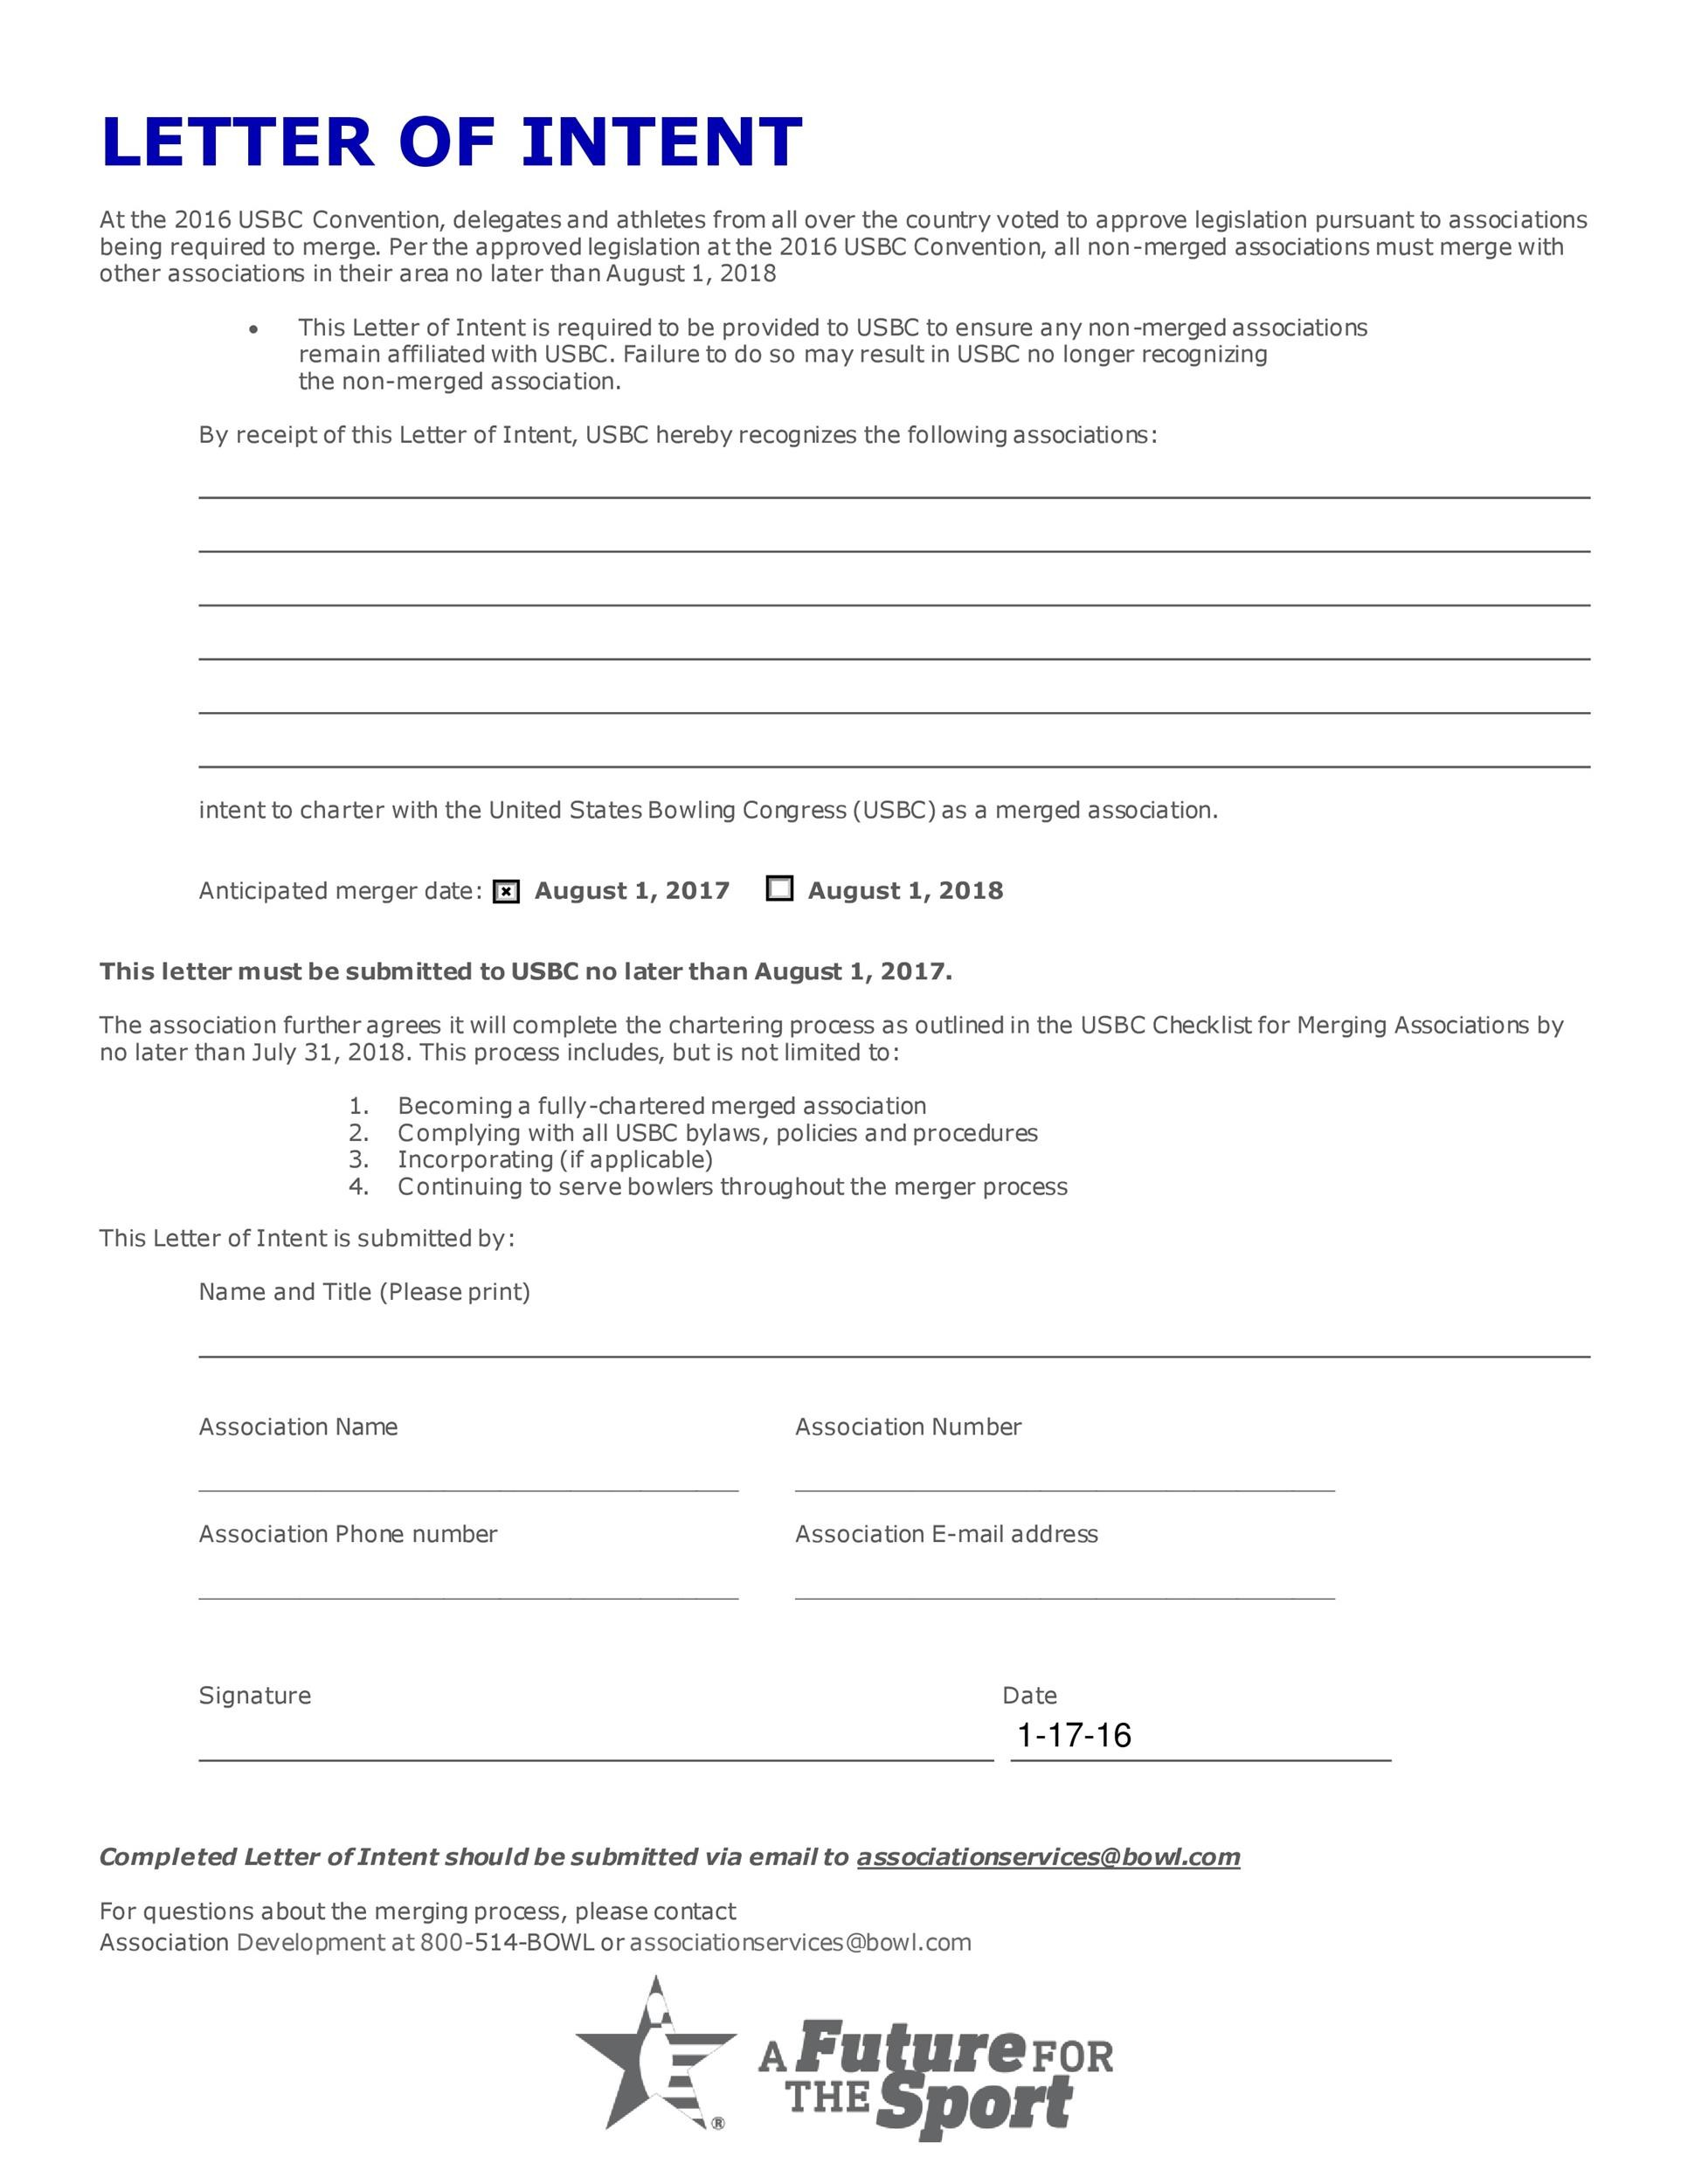 Letter Of Intent Job Letter Of Intent Templates Samples For Job